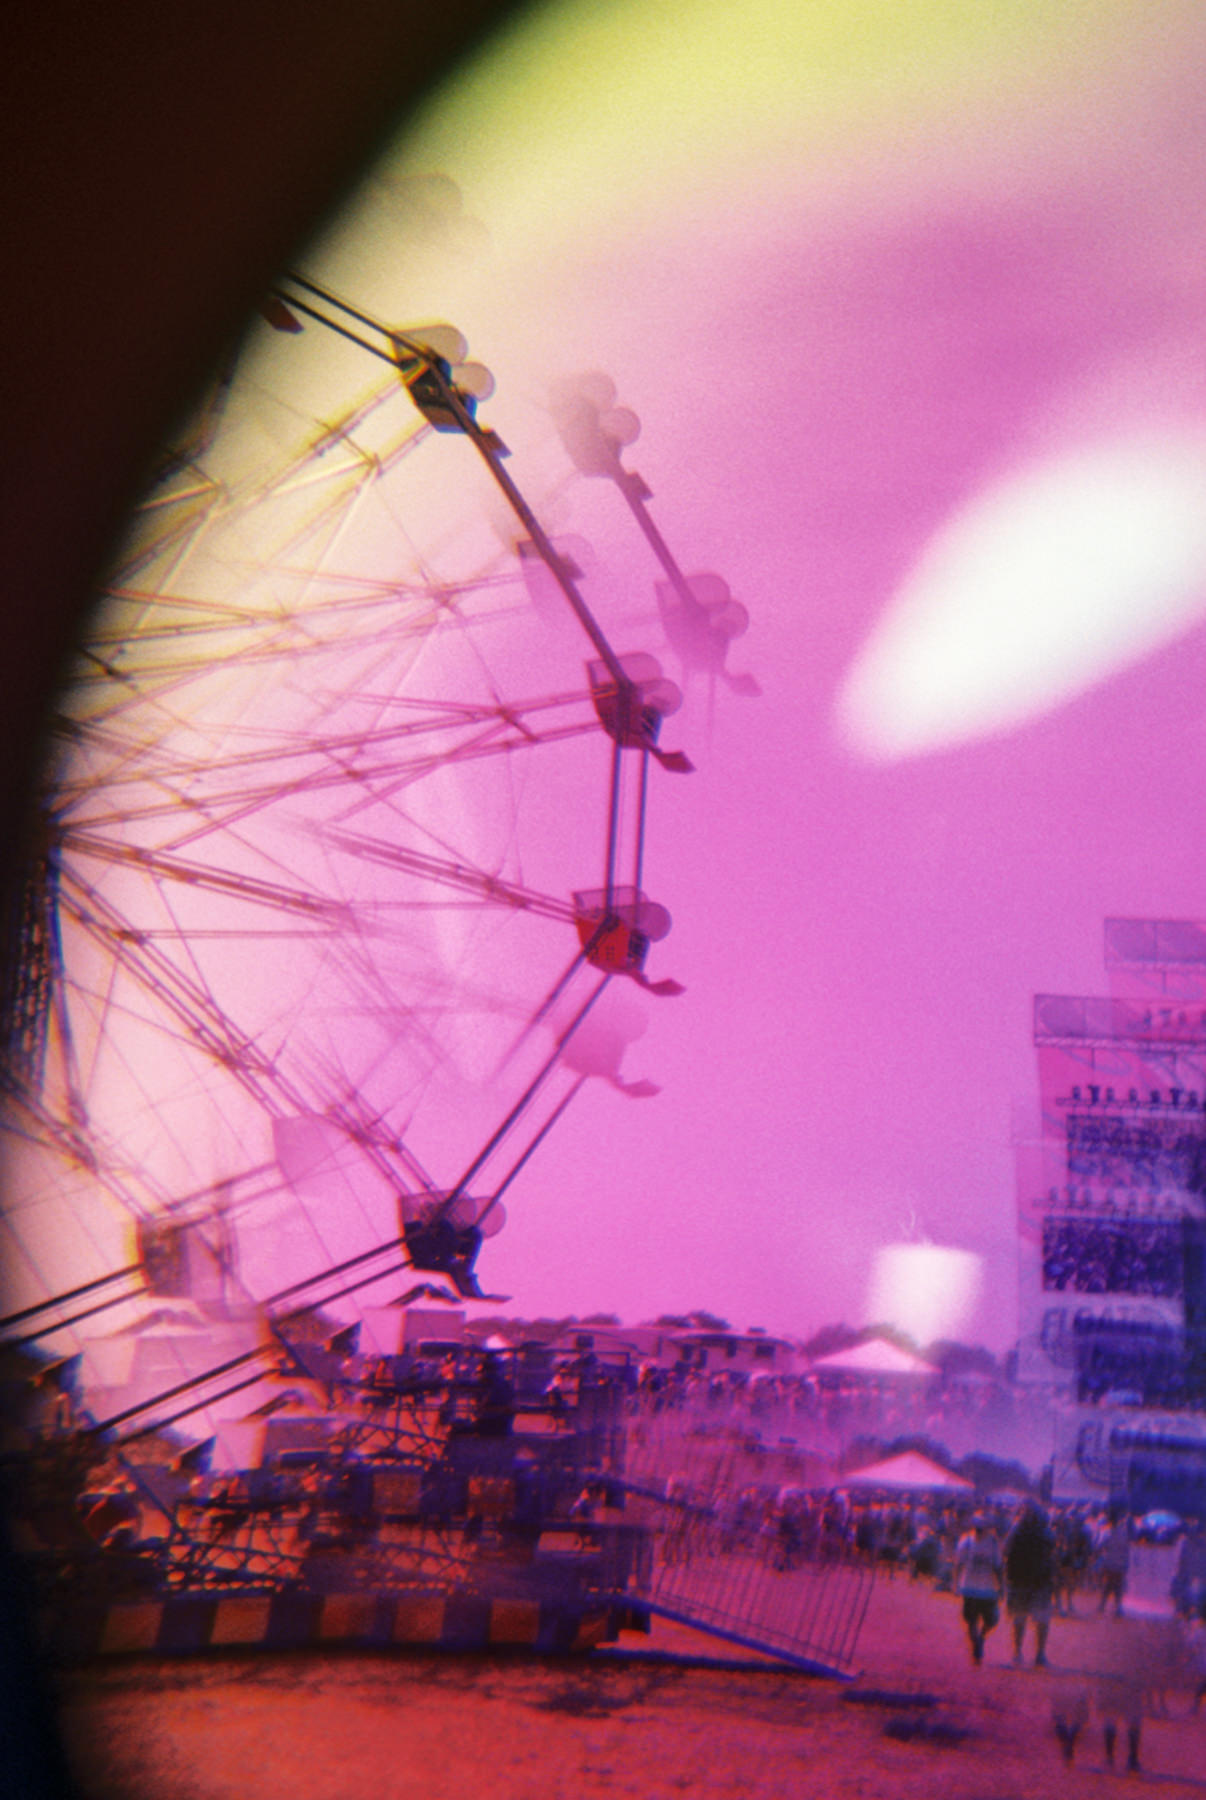 180728-kirby-gladstein-photograpy-Float-Fest-Fuji-disposable-033.jpg